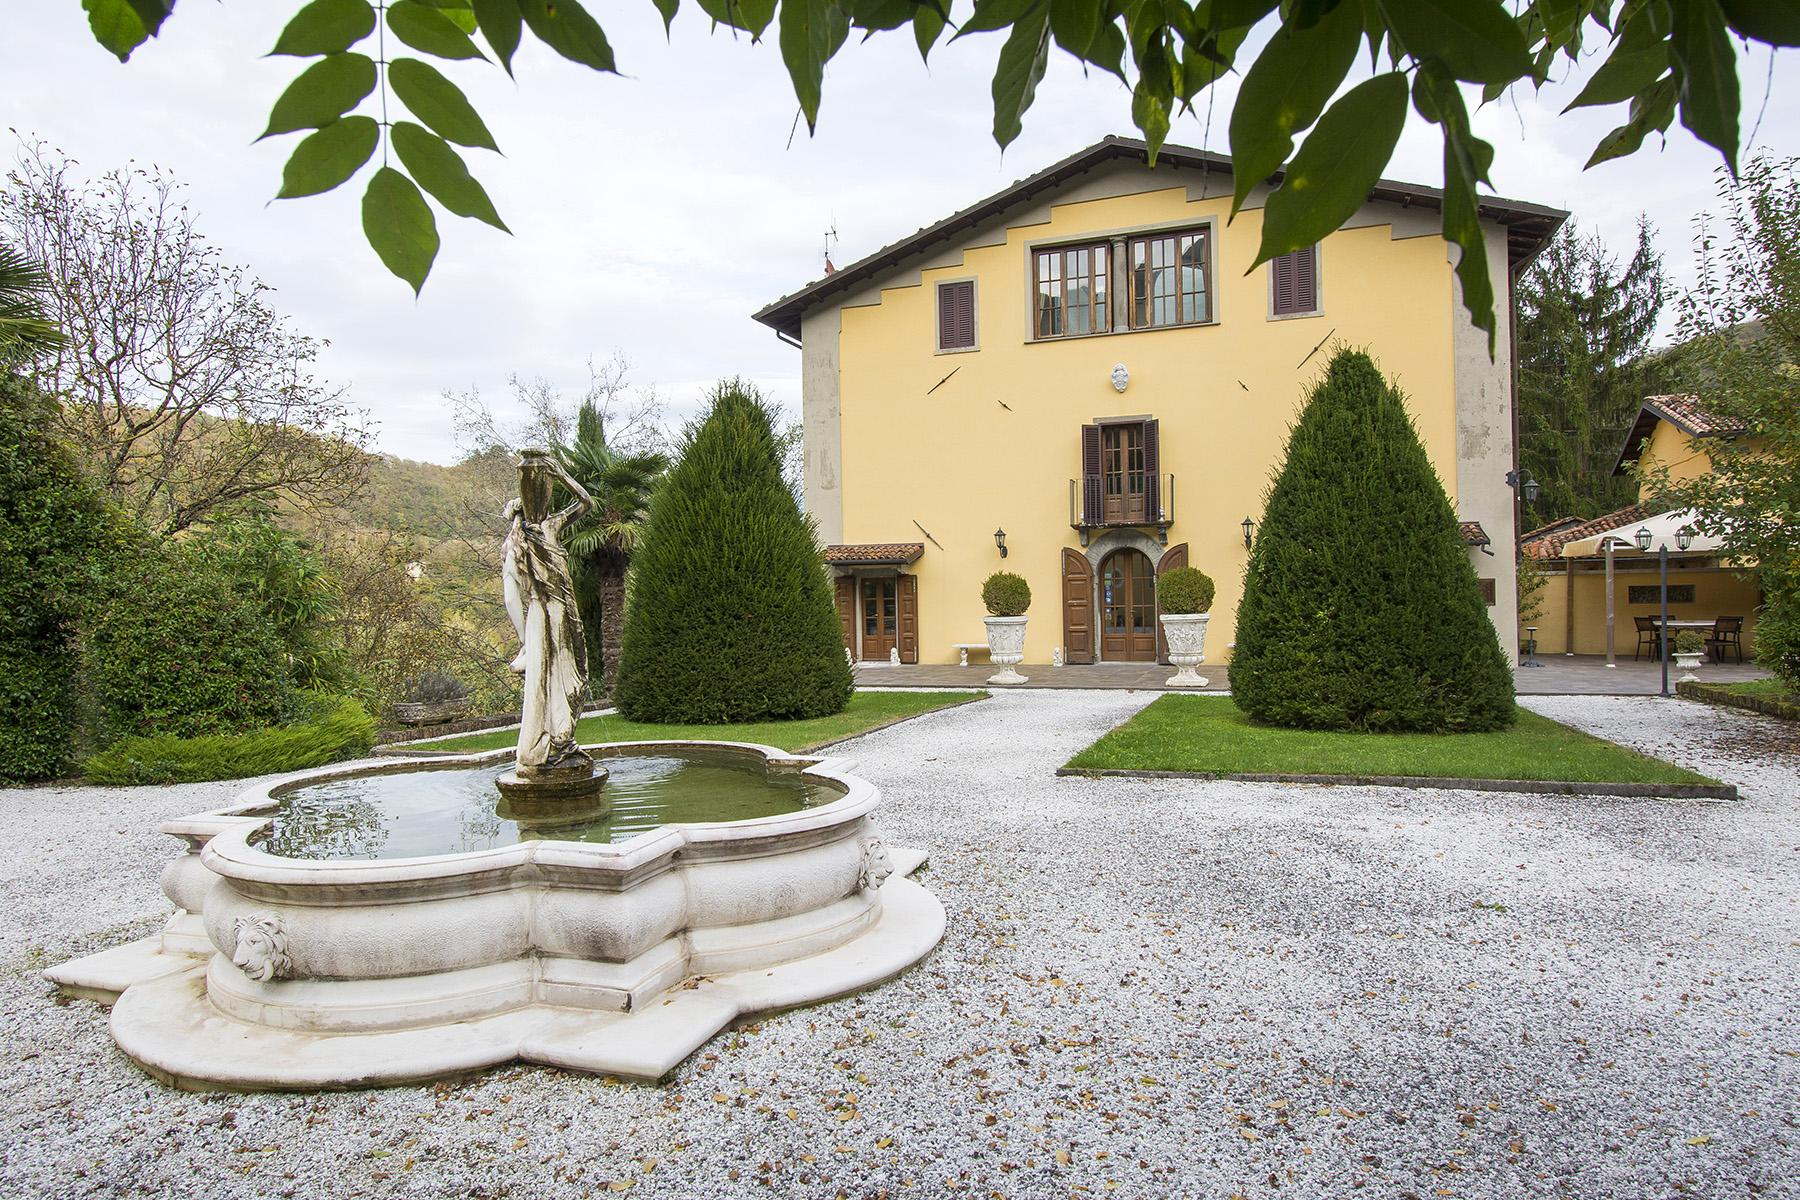 Luxury Renaissance Villa on the hills of Garfagnana Region - 27